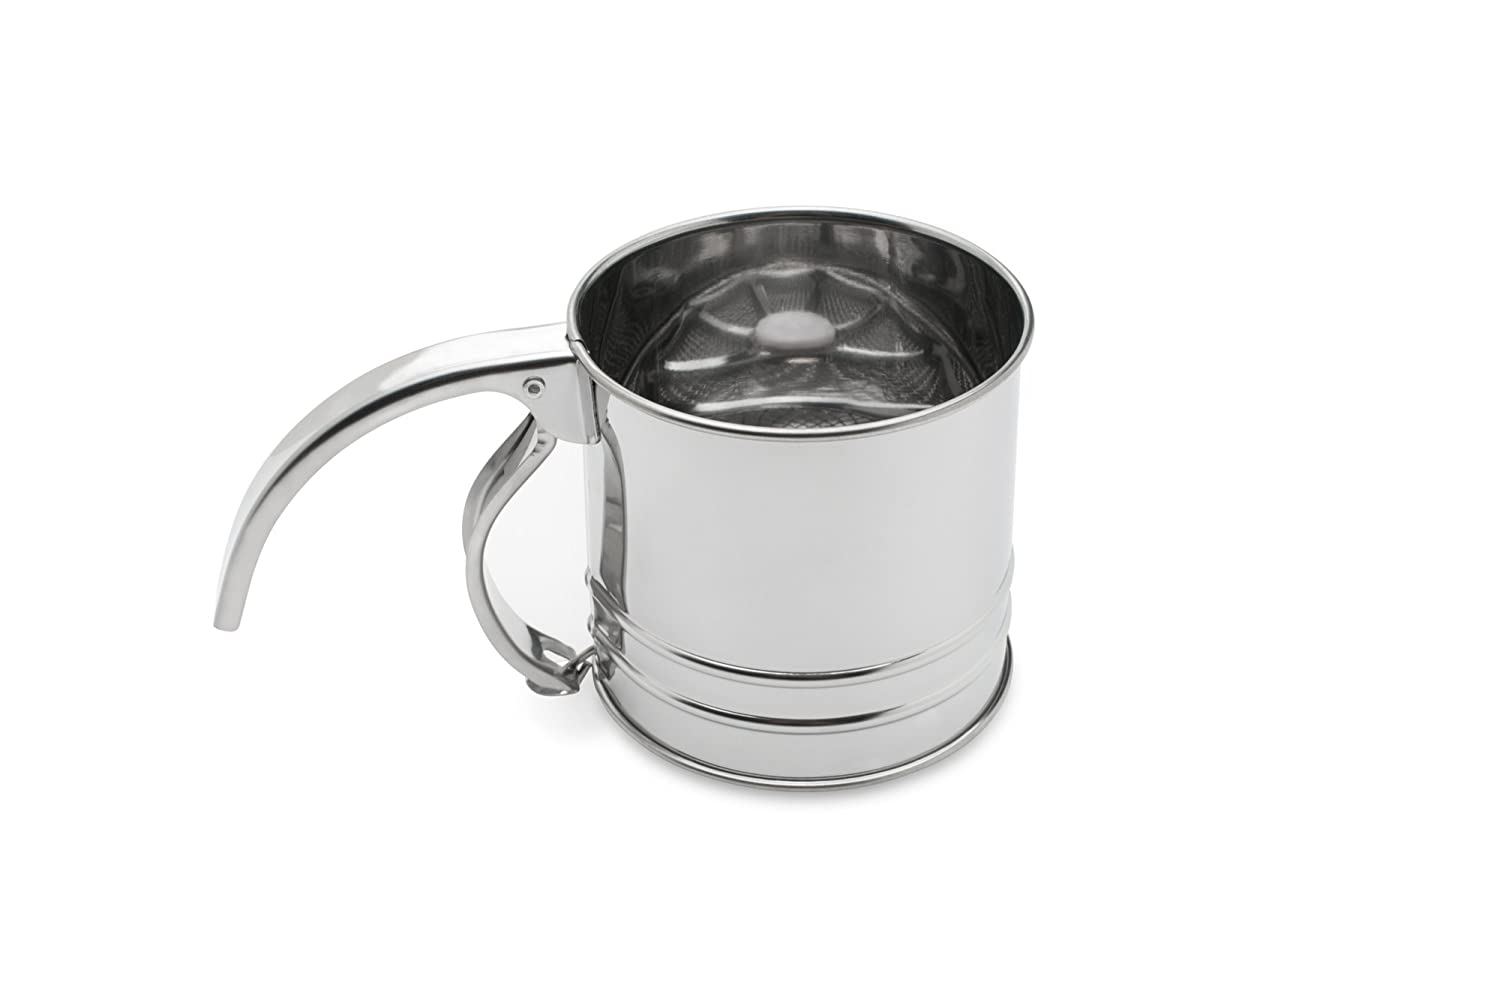 Fox Run 4652 Flour Sifter, Stainless Steel, 1-Cup